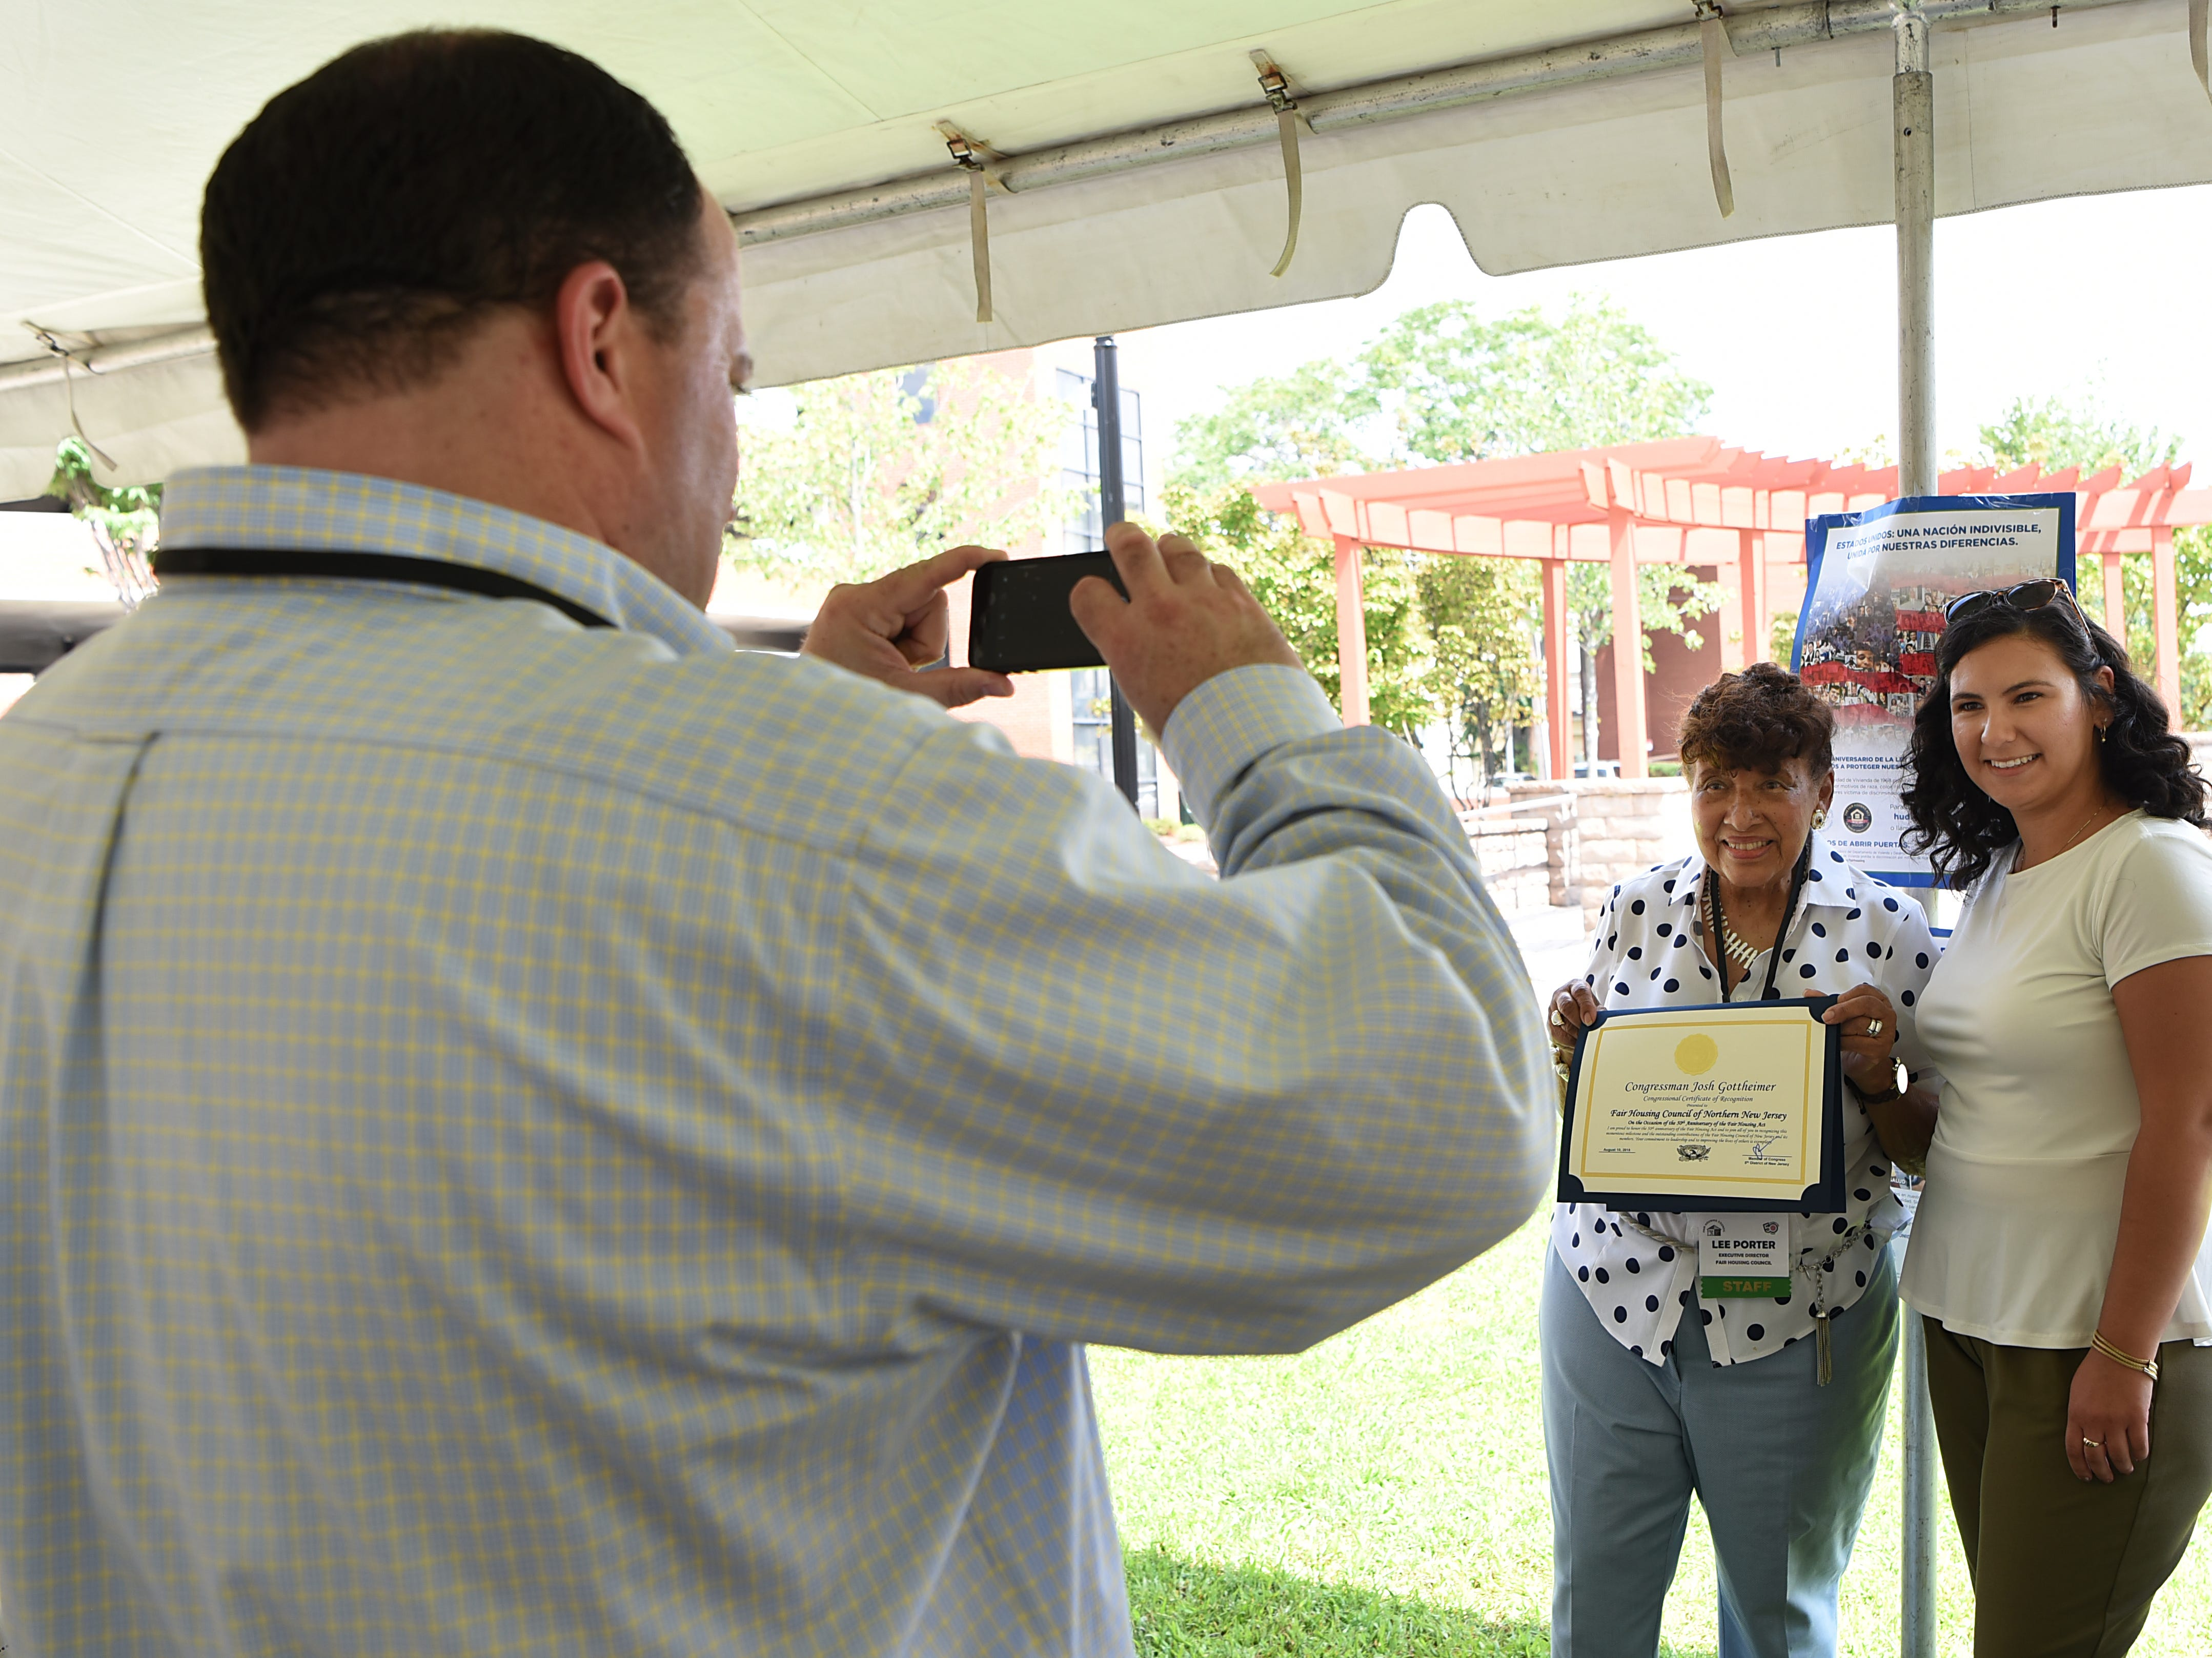 David Whritenour takes a photo of Lee Porter and Kasia Was. The Fair Housing Council of Northern New Jersey holds a picnic in Hackensack on Friday August 10, 2018.